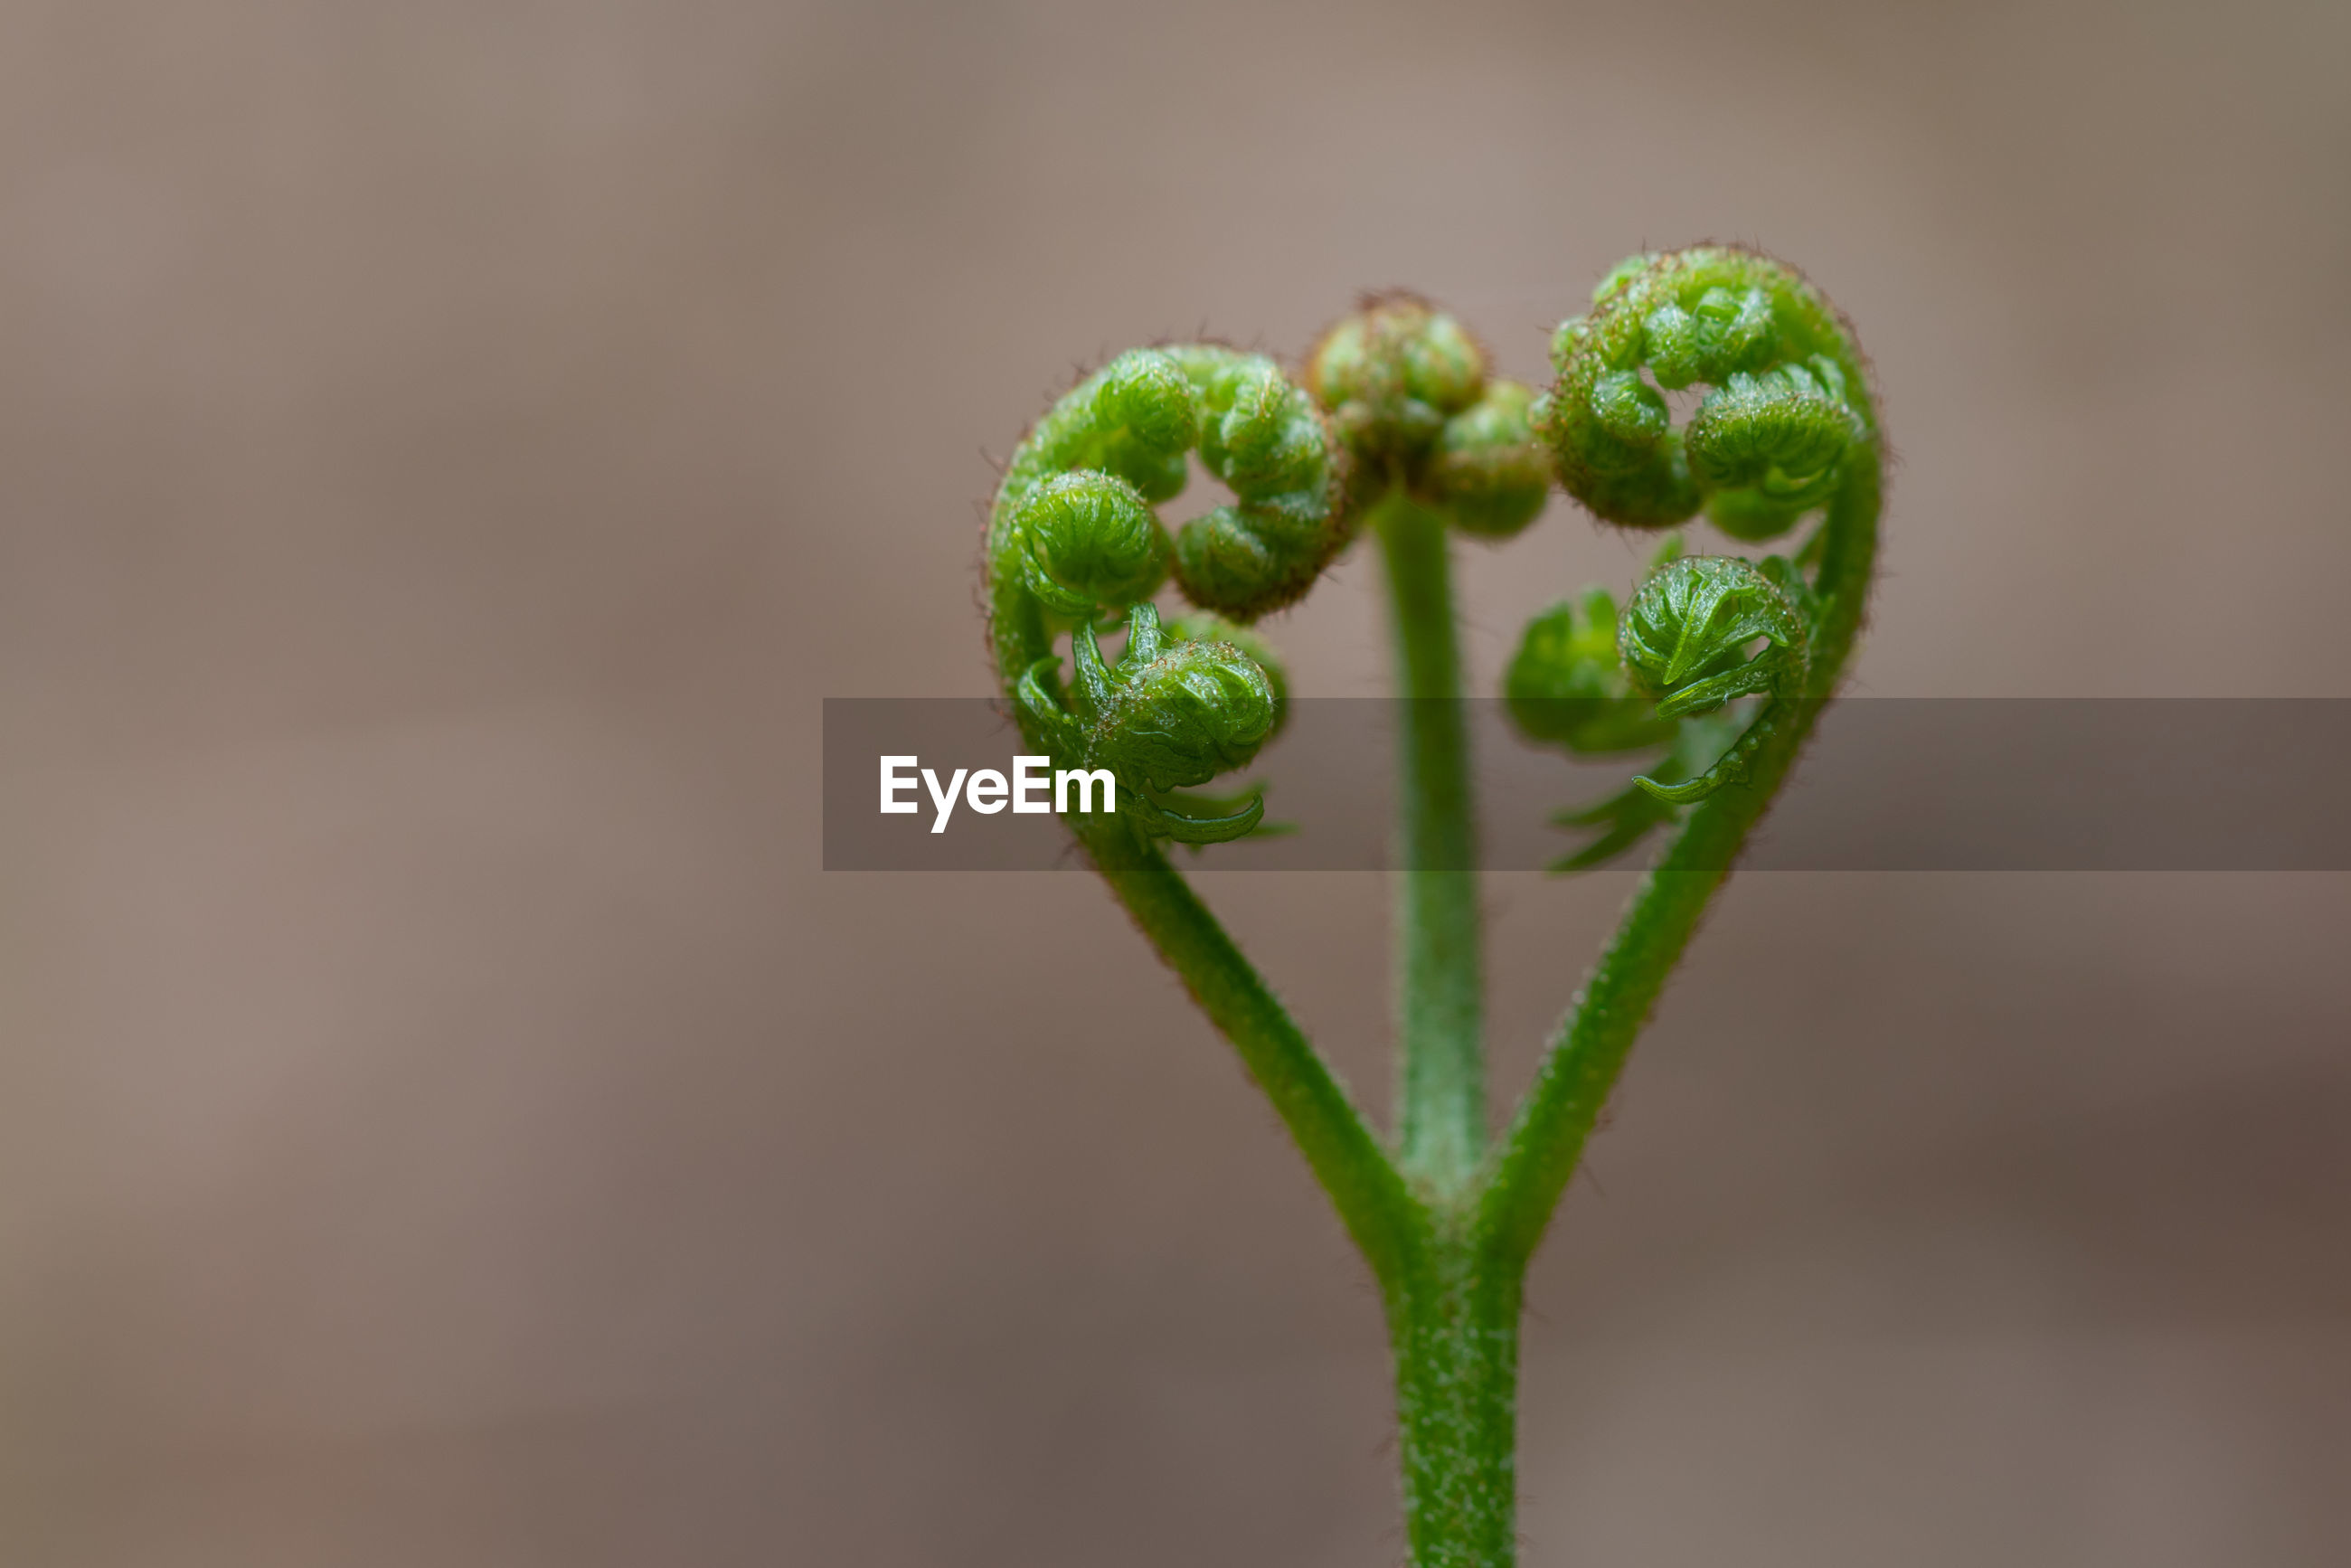 CLOSE-UP OF GREEN BUD